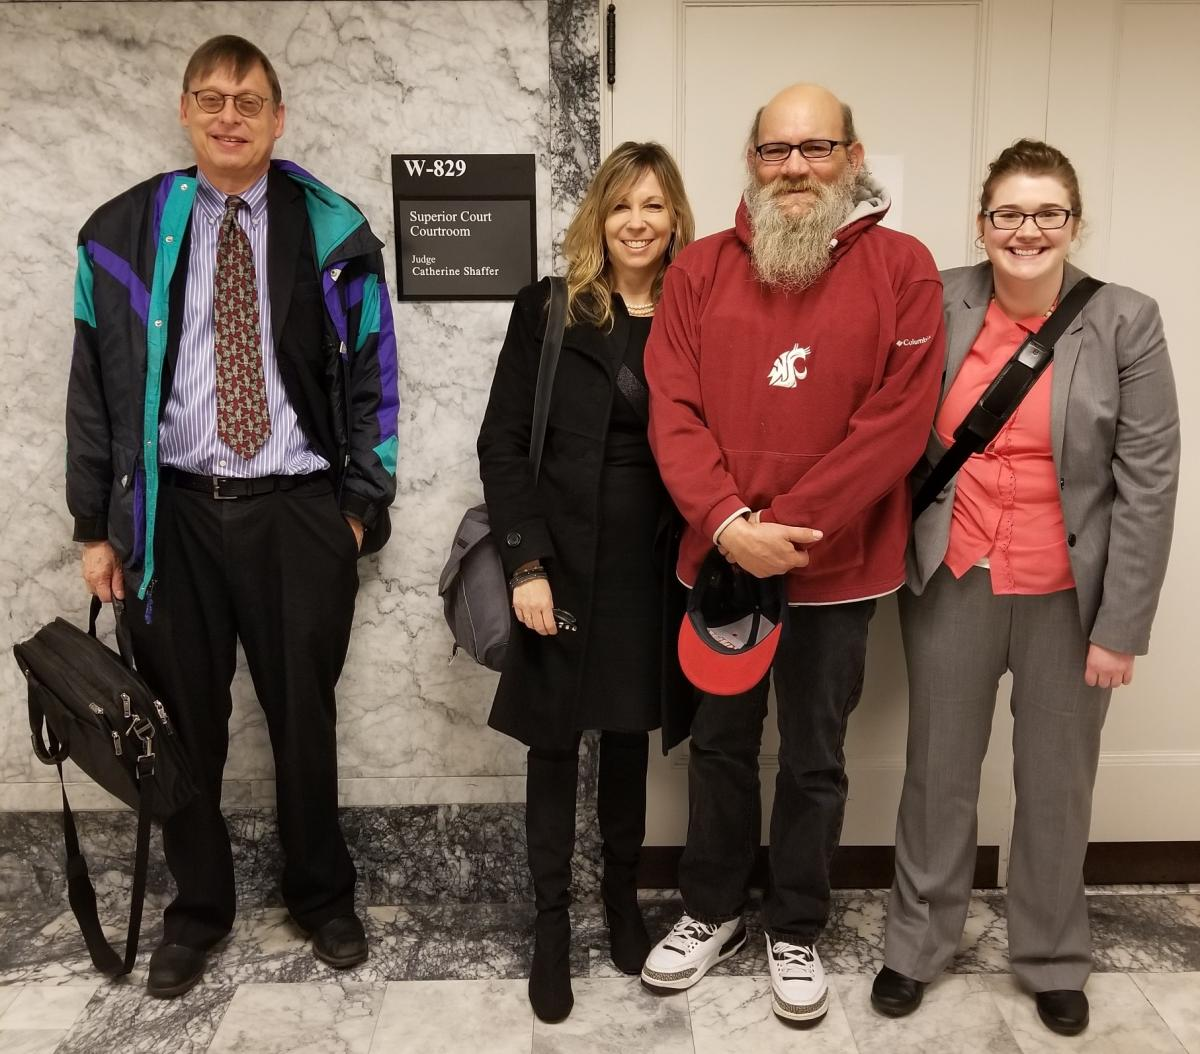 Left to Right: Jim Lobsenz of Carney Badley Spellman, Ann LoGerfo of Columbia Legal Services, Steven Long, and Alison Bilow of Columbia Legal Services.